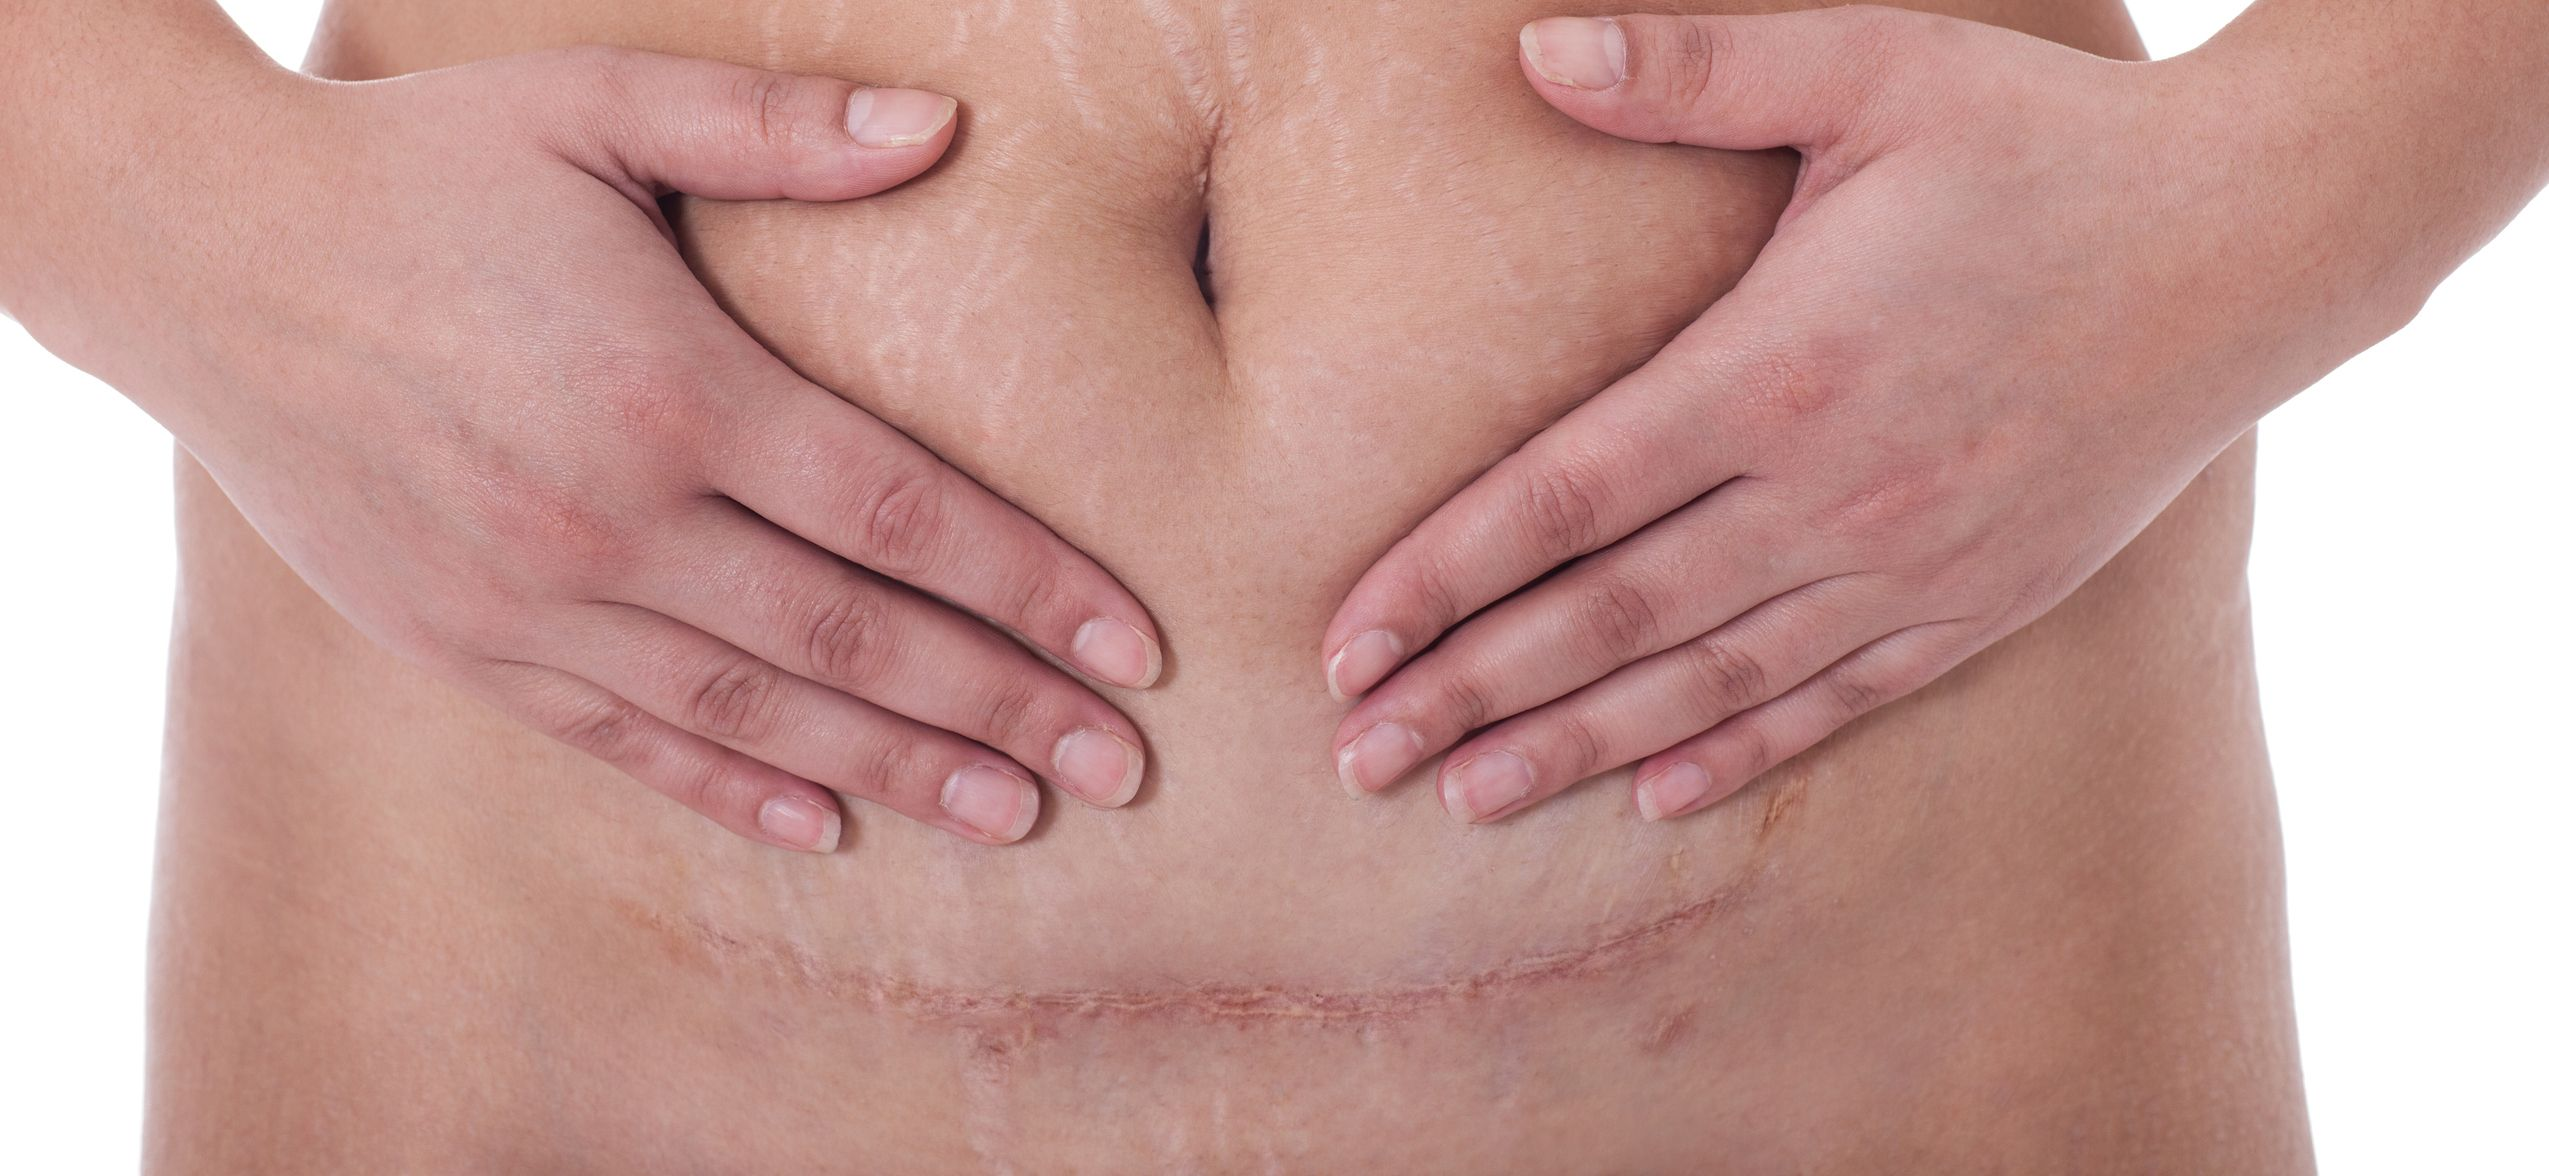 Photo of woman's hands on abdomen showing tummy tuck scar